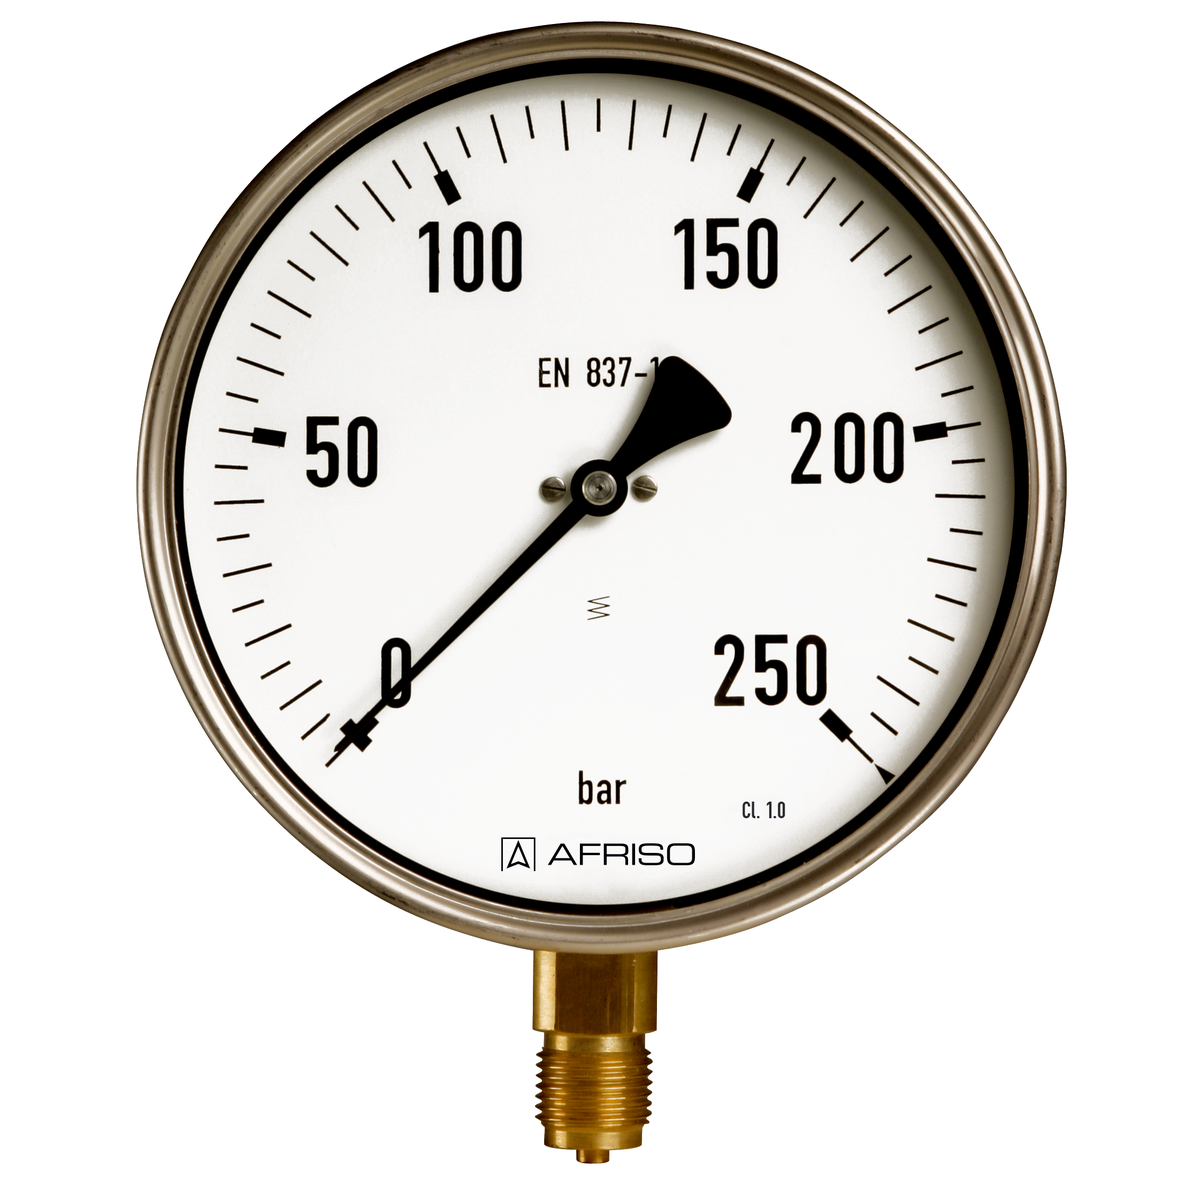 2100-T, 2160-T Industrimanometer